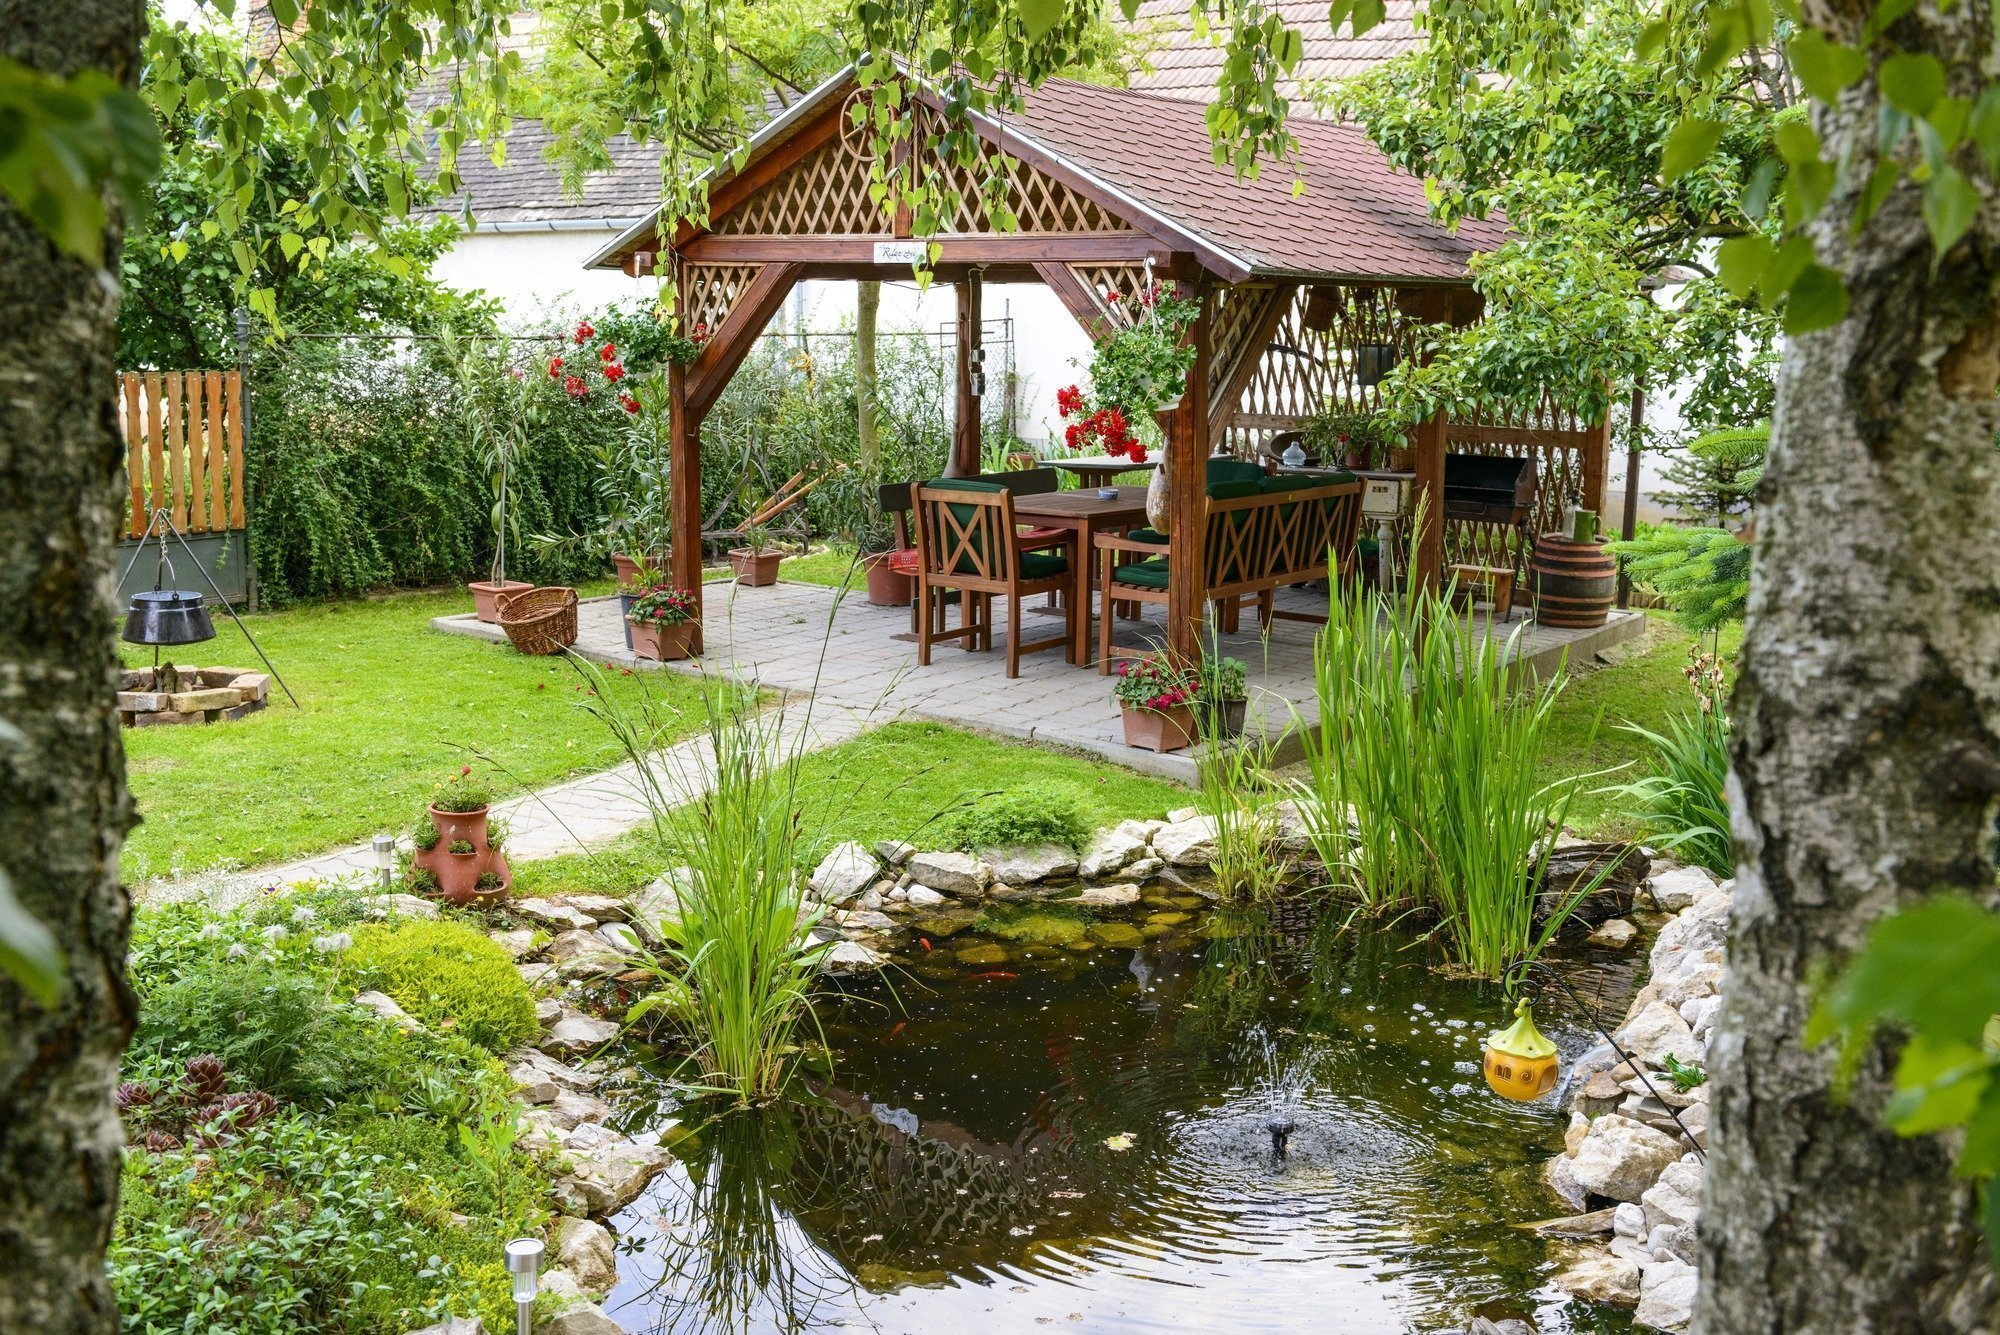 Things to Consider Before Building a Backyard Pond